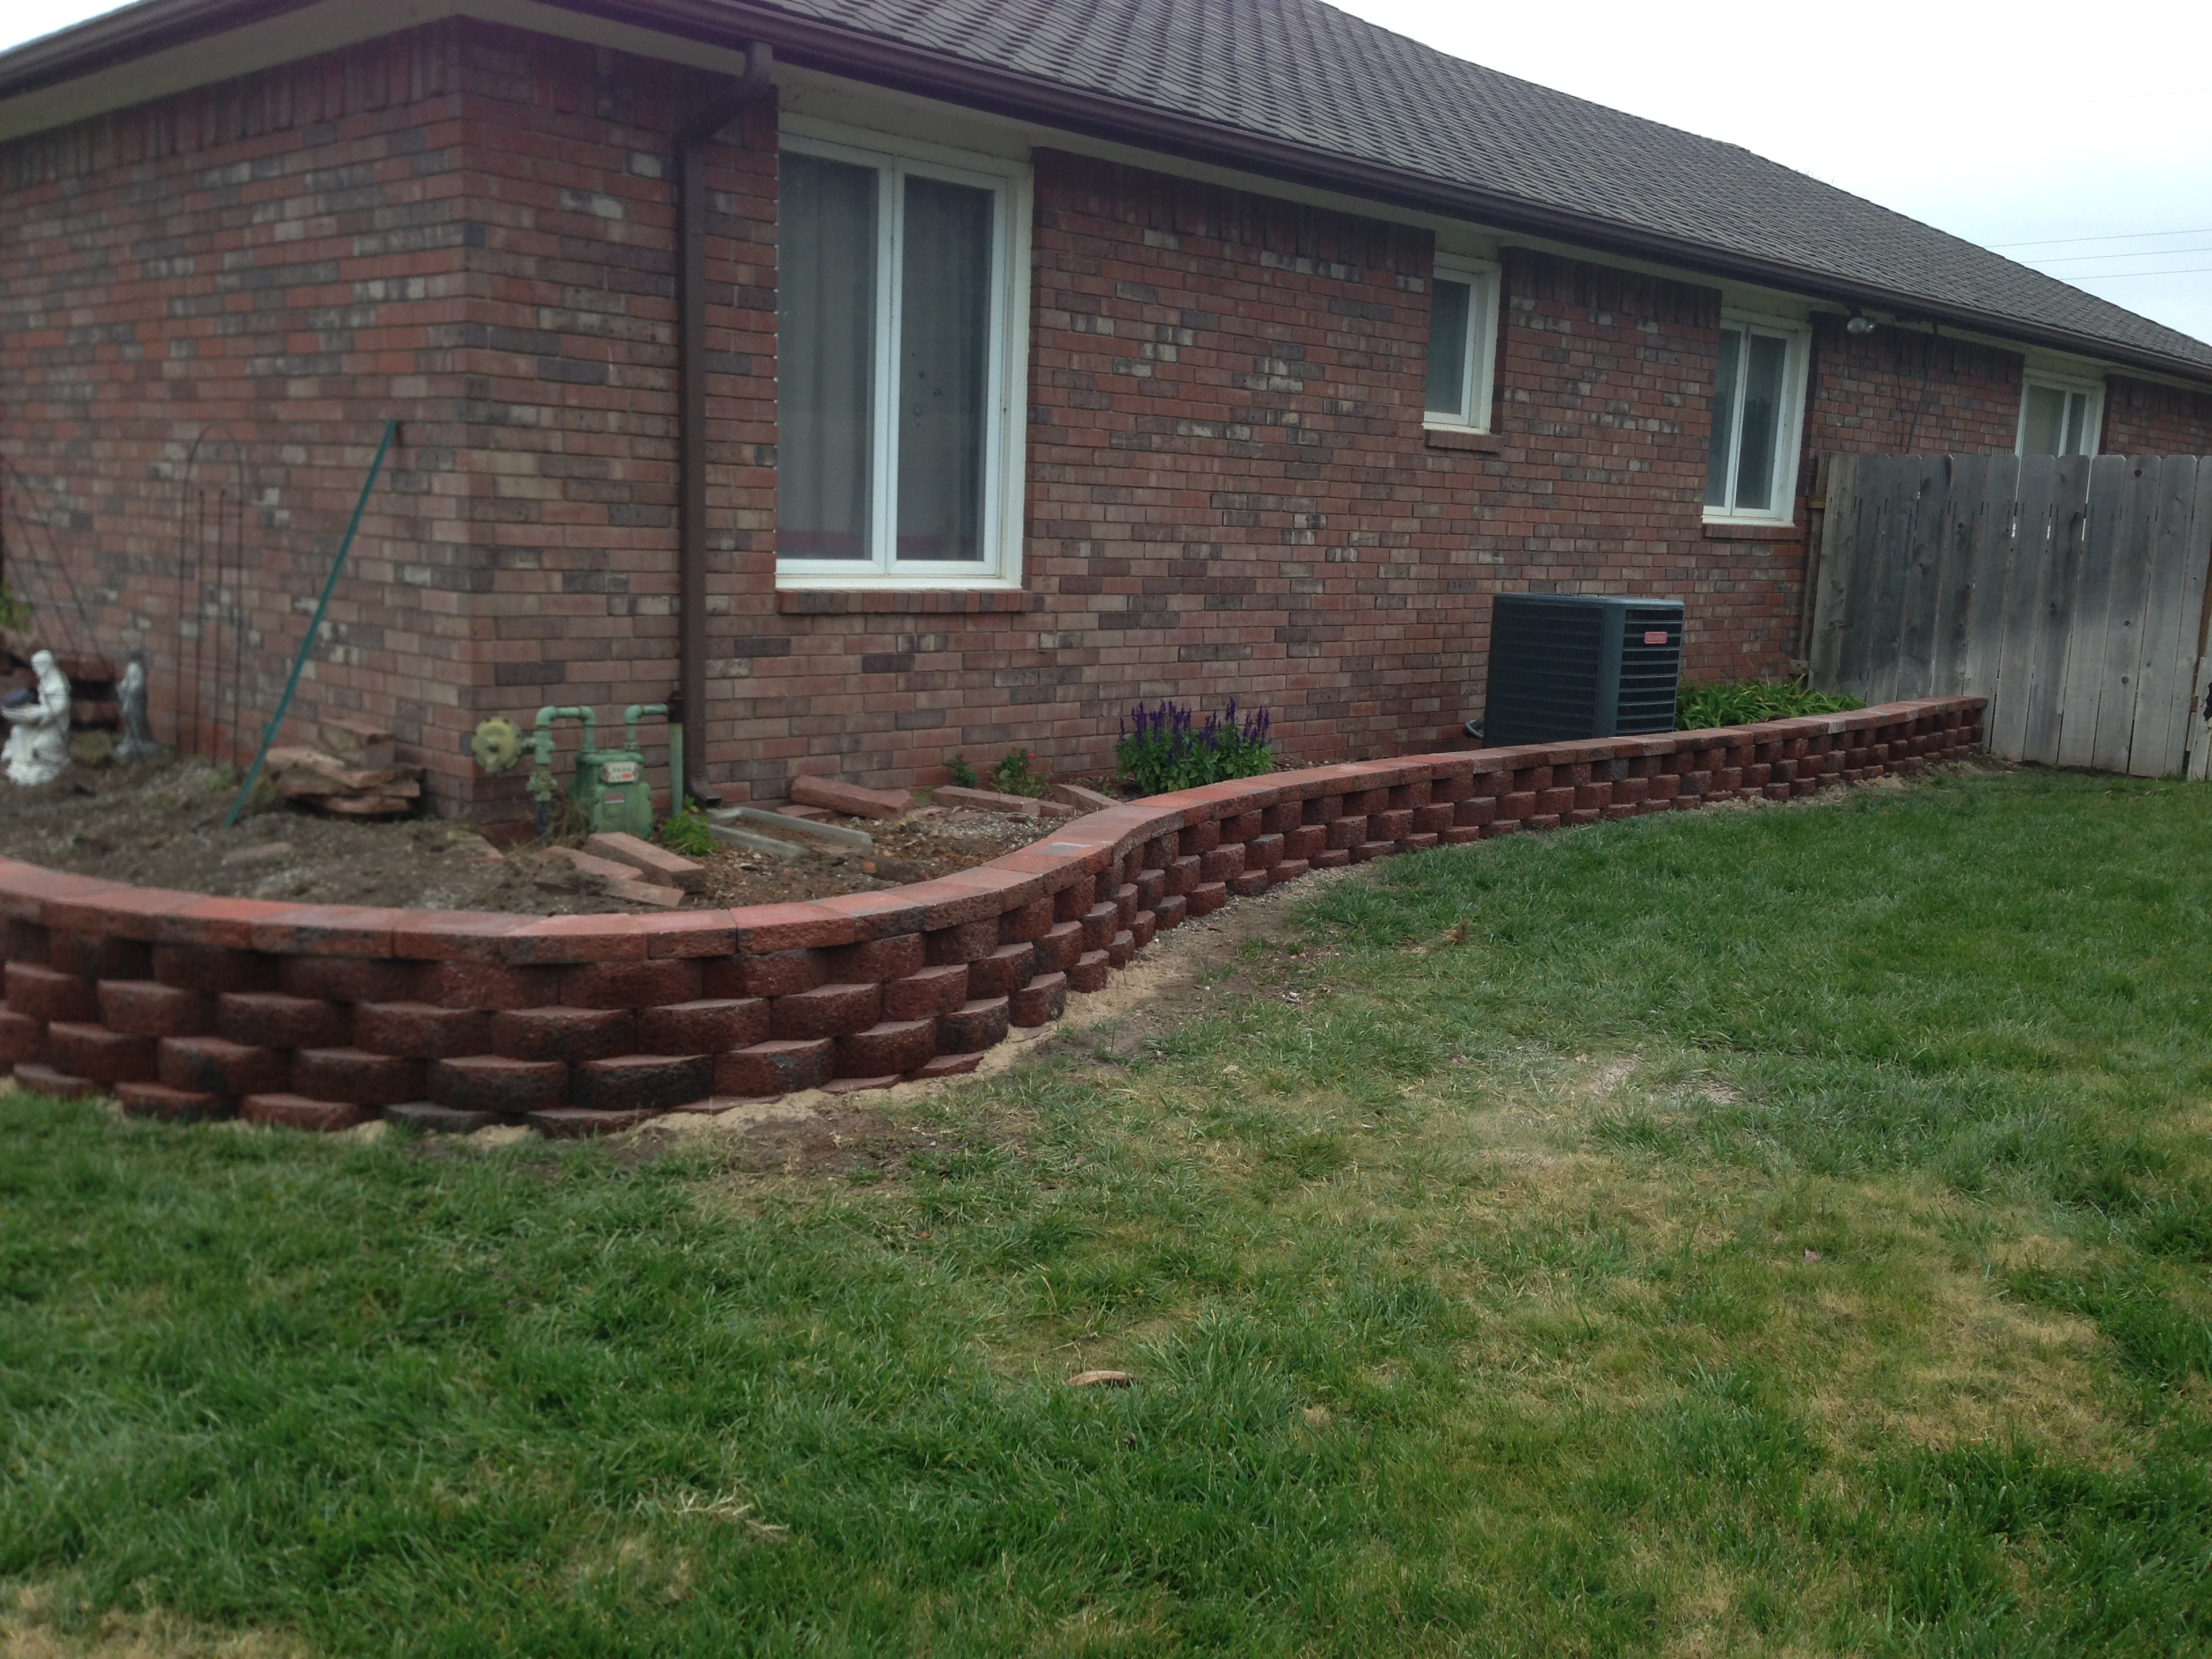 Landscape construction daniels lawn and landscaping services for Landscape construction